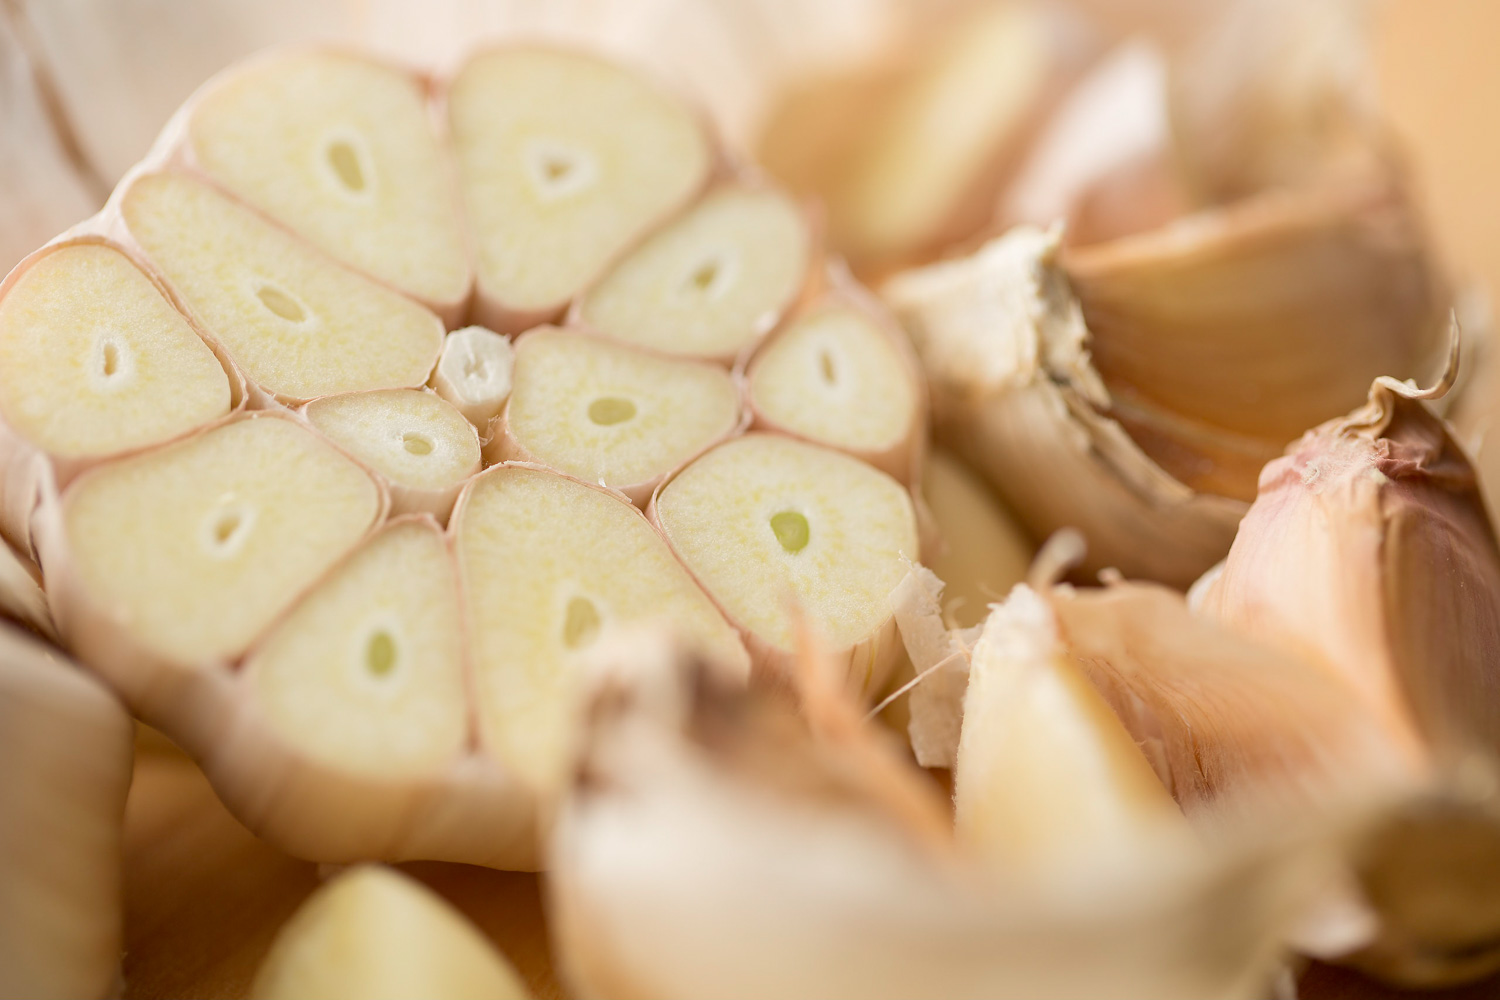 6-chef-cooking-kitchen-table-cutting-herbs-spices-garlic-macro-marketing-sales-advertising-photographer-daniel-buehler-danbcreative-food-photography.jpg